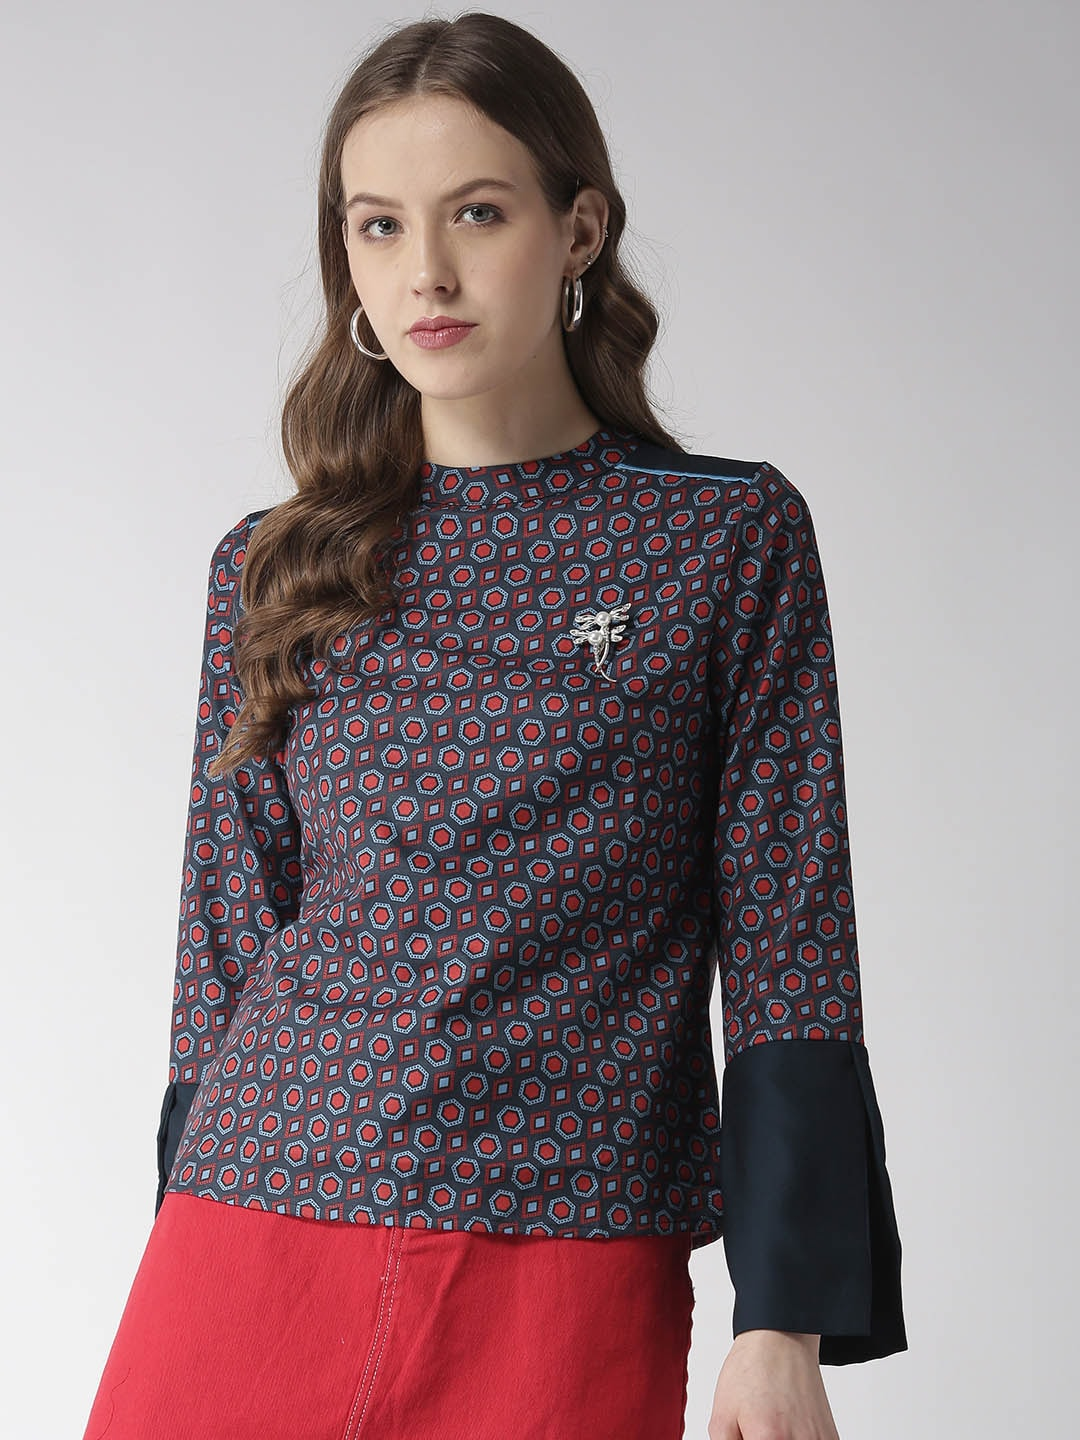 0efa3628cbab13 Madame Tops - Buy Madame Top for Women Online in India